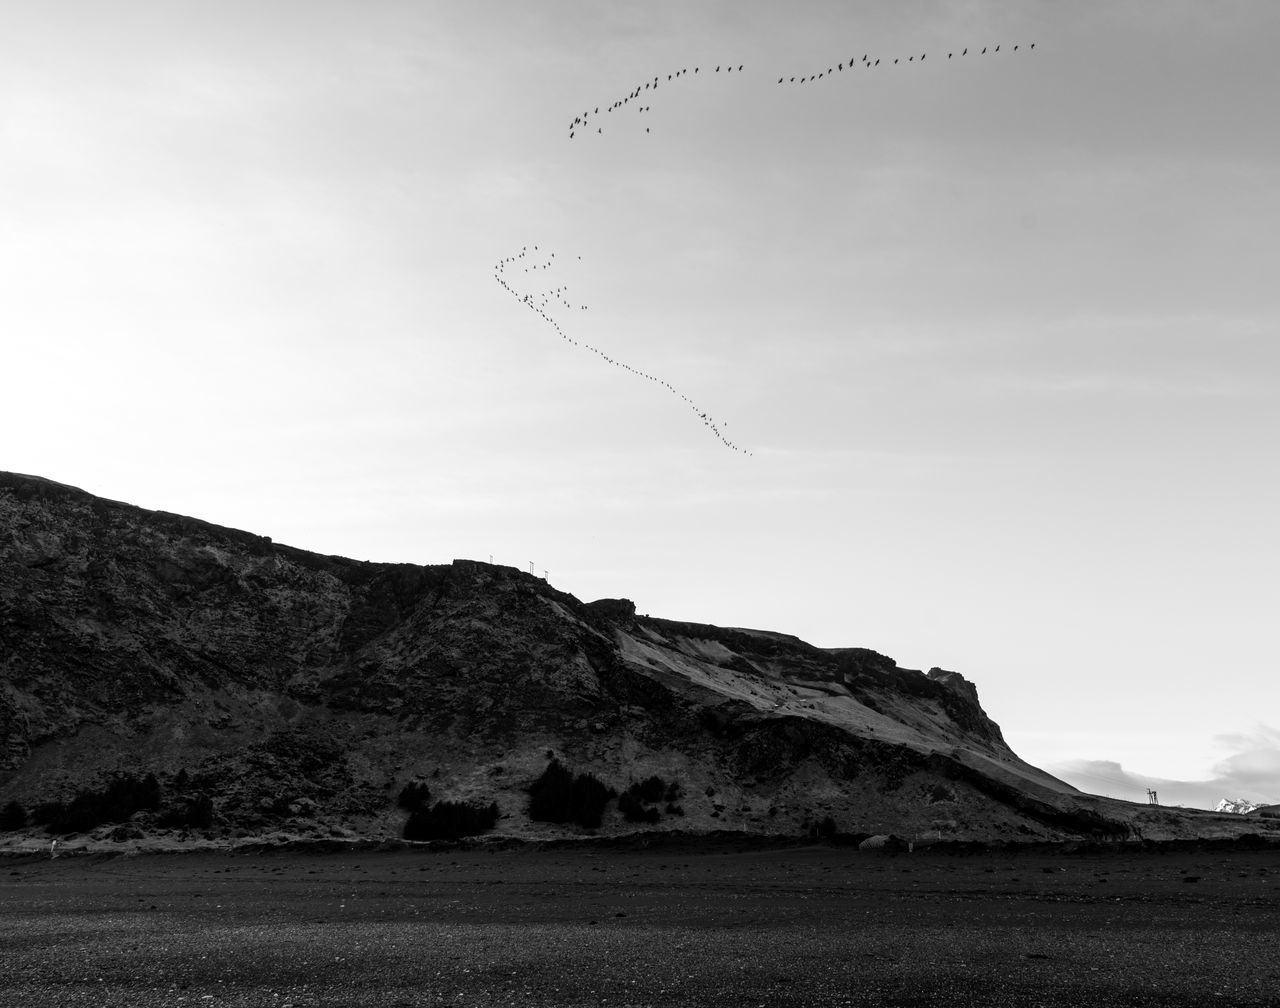 V for Vendible. Sky Landscape Nature Mountain Beauty In Nature Tranquility Outdoors Animal Themes Bird In Formation Formation Formation Flying Birds Iceland Memories Iceland_collection Iceland Iceland Trip Blackandwhite Black And White Black & White Traveling Travel Photography Roadtrip Vik Travel Destinations